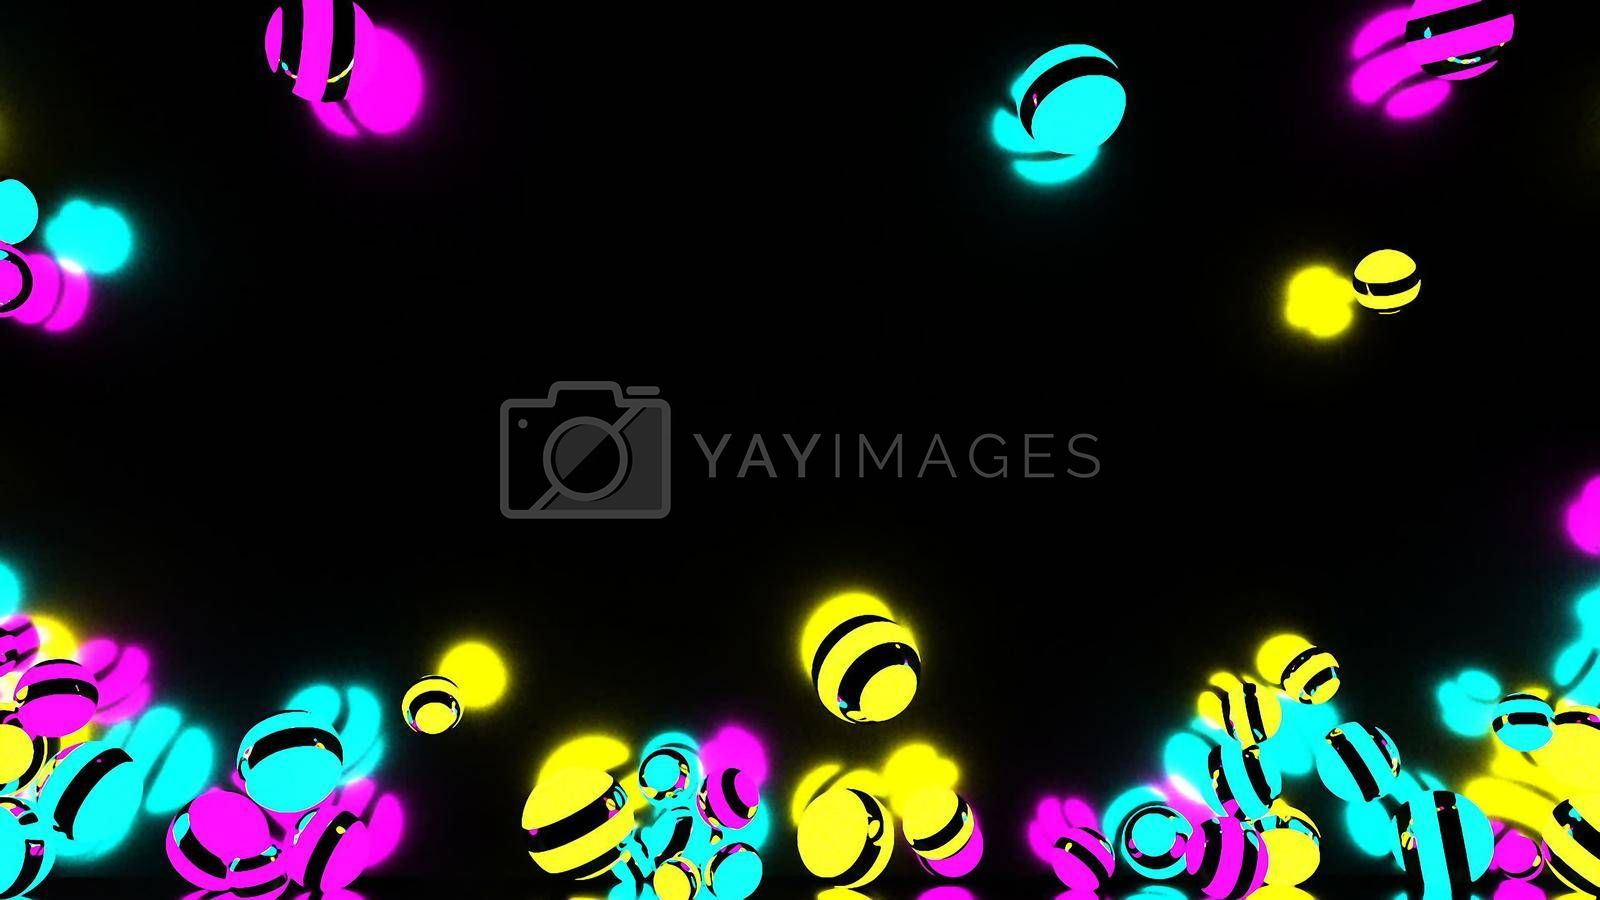 HD Abstract CGI motion graphics with glowing multicolored spheres